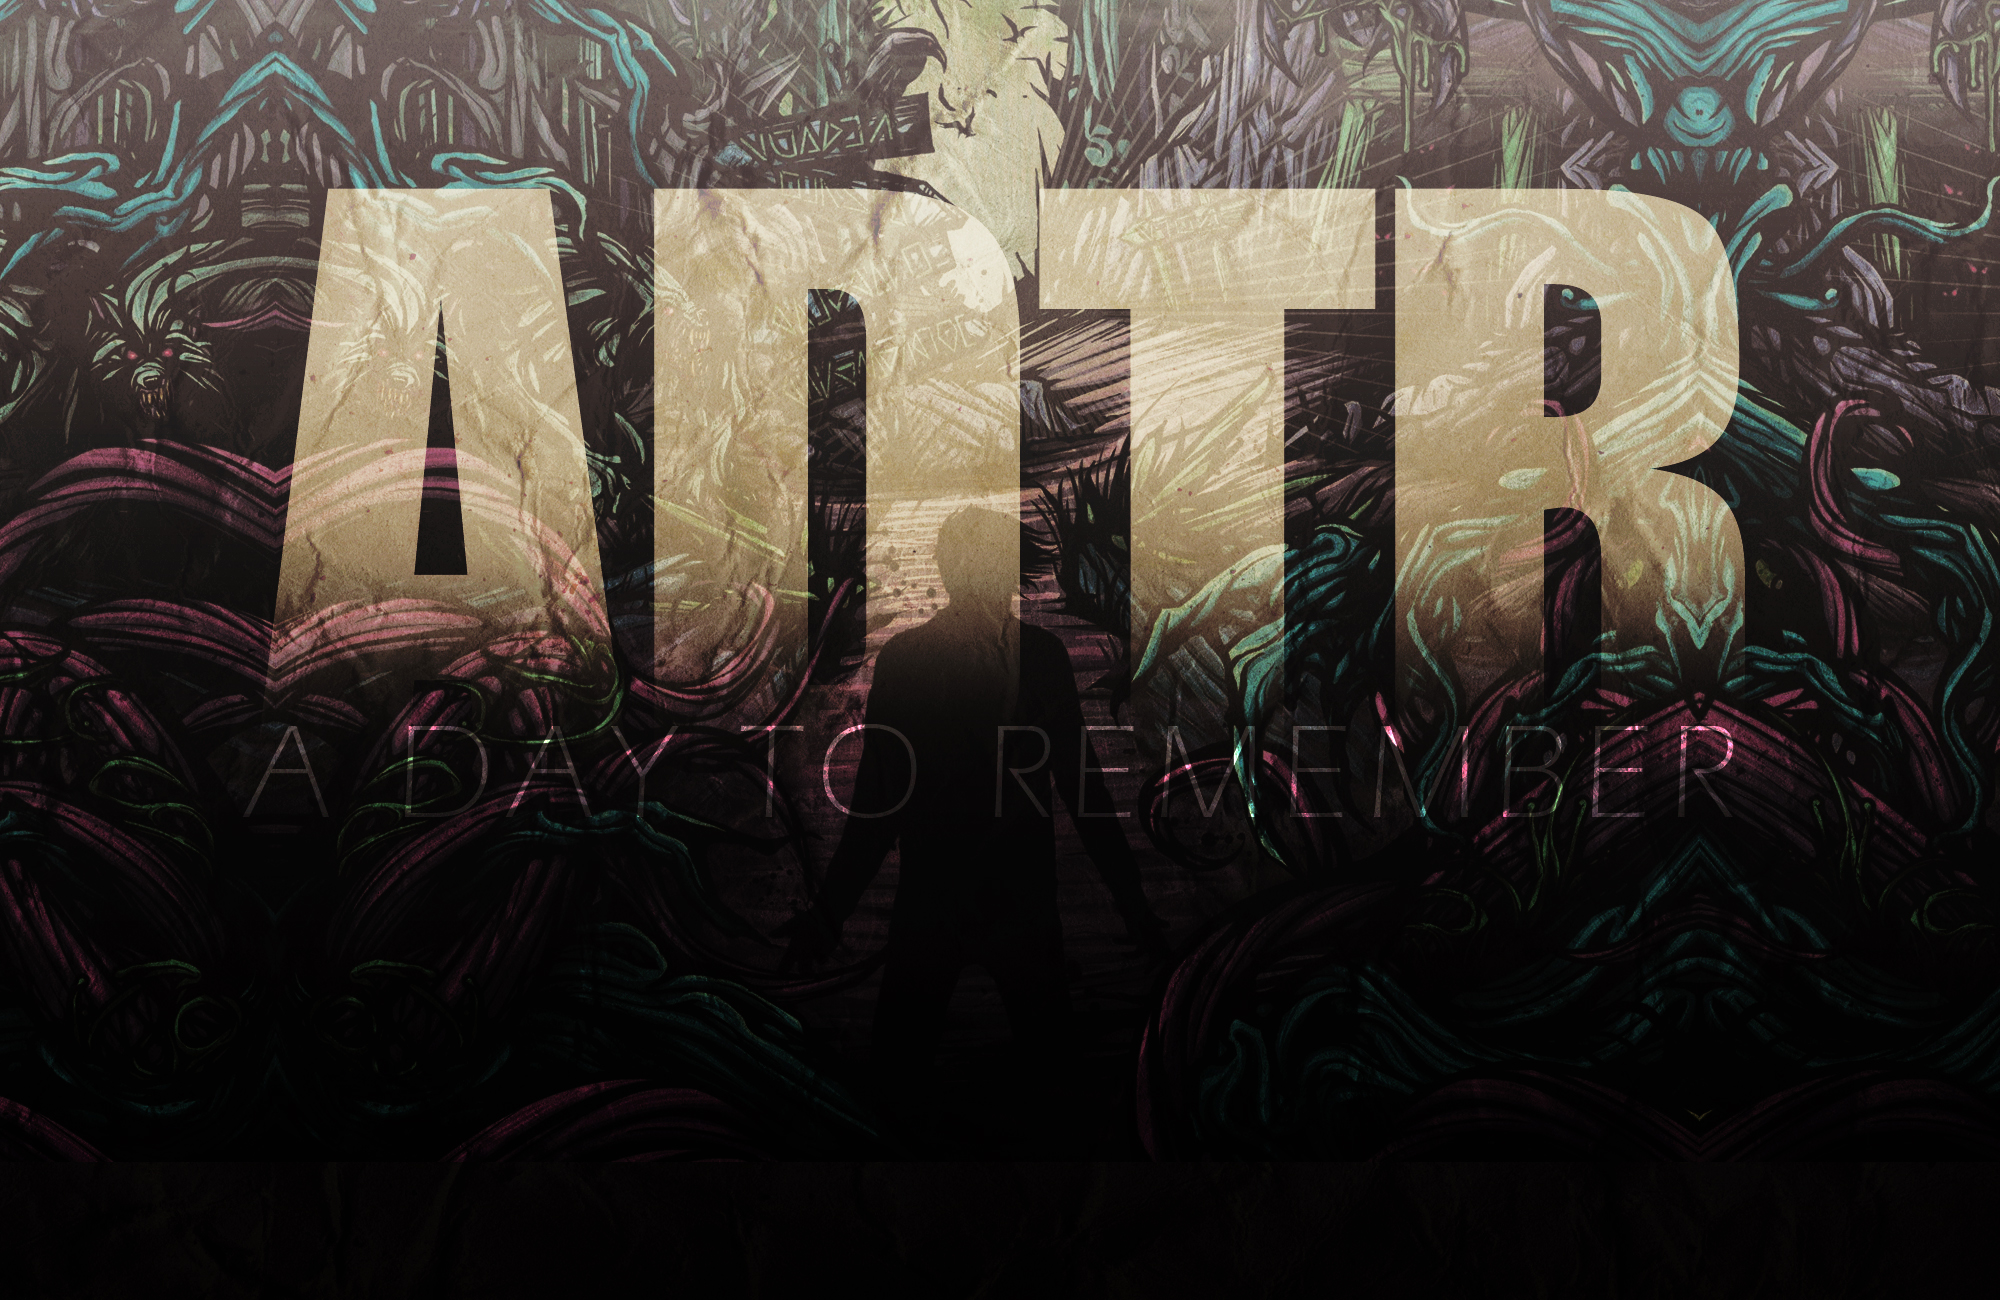 A day to remember homesick by beacdc on deviantart a day to remember by fuckingdaytoremember voltagebd Choice Image